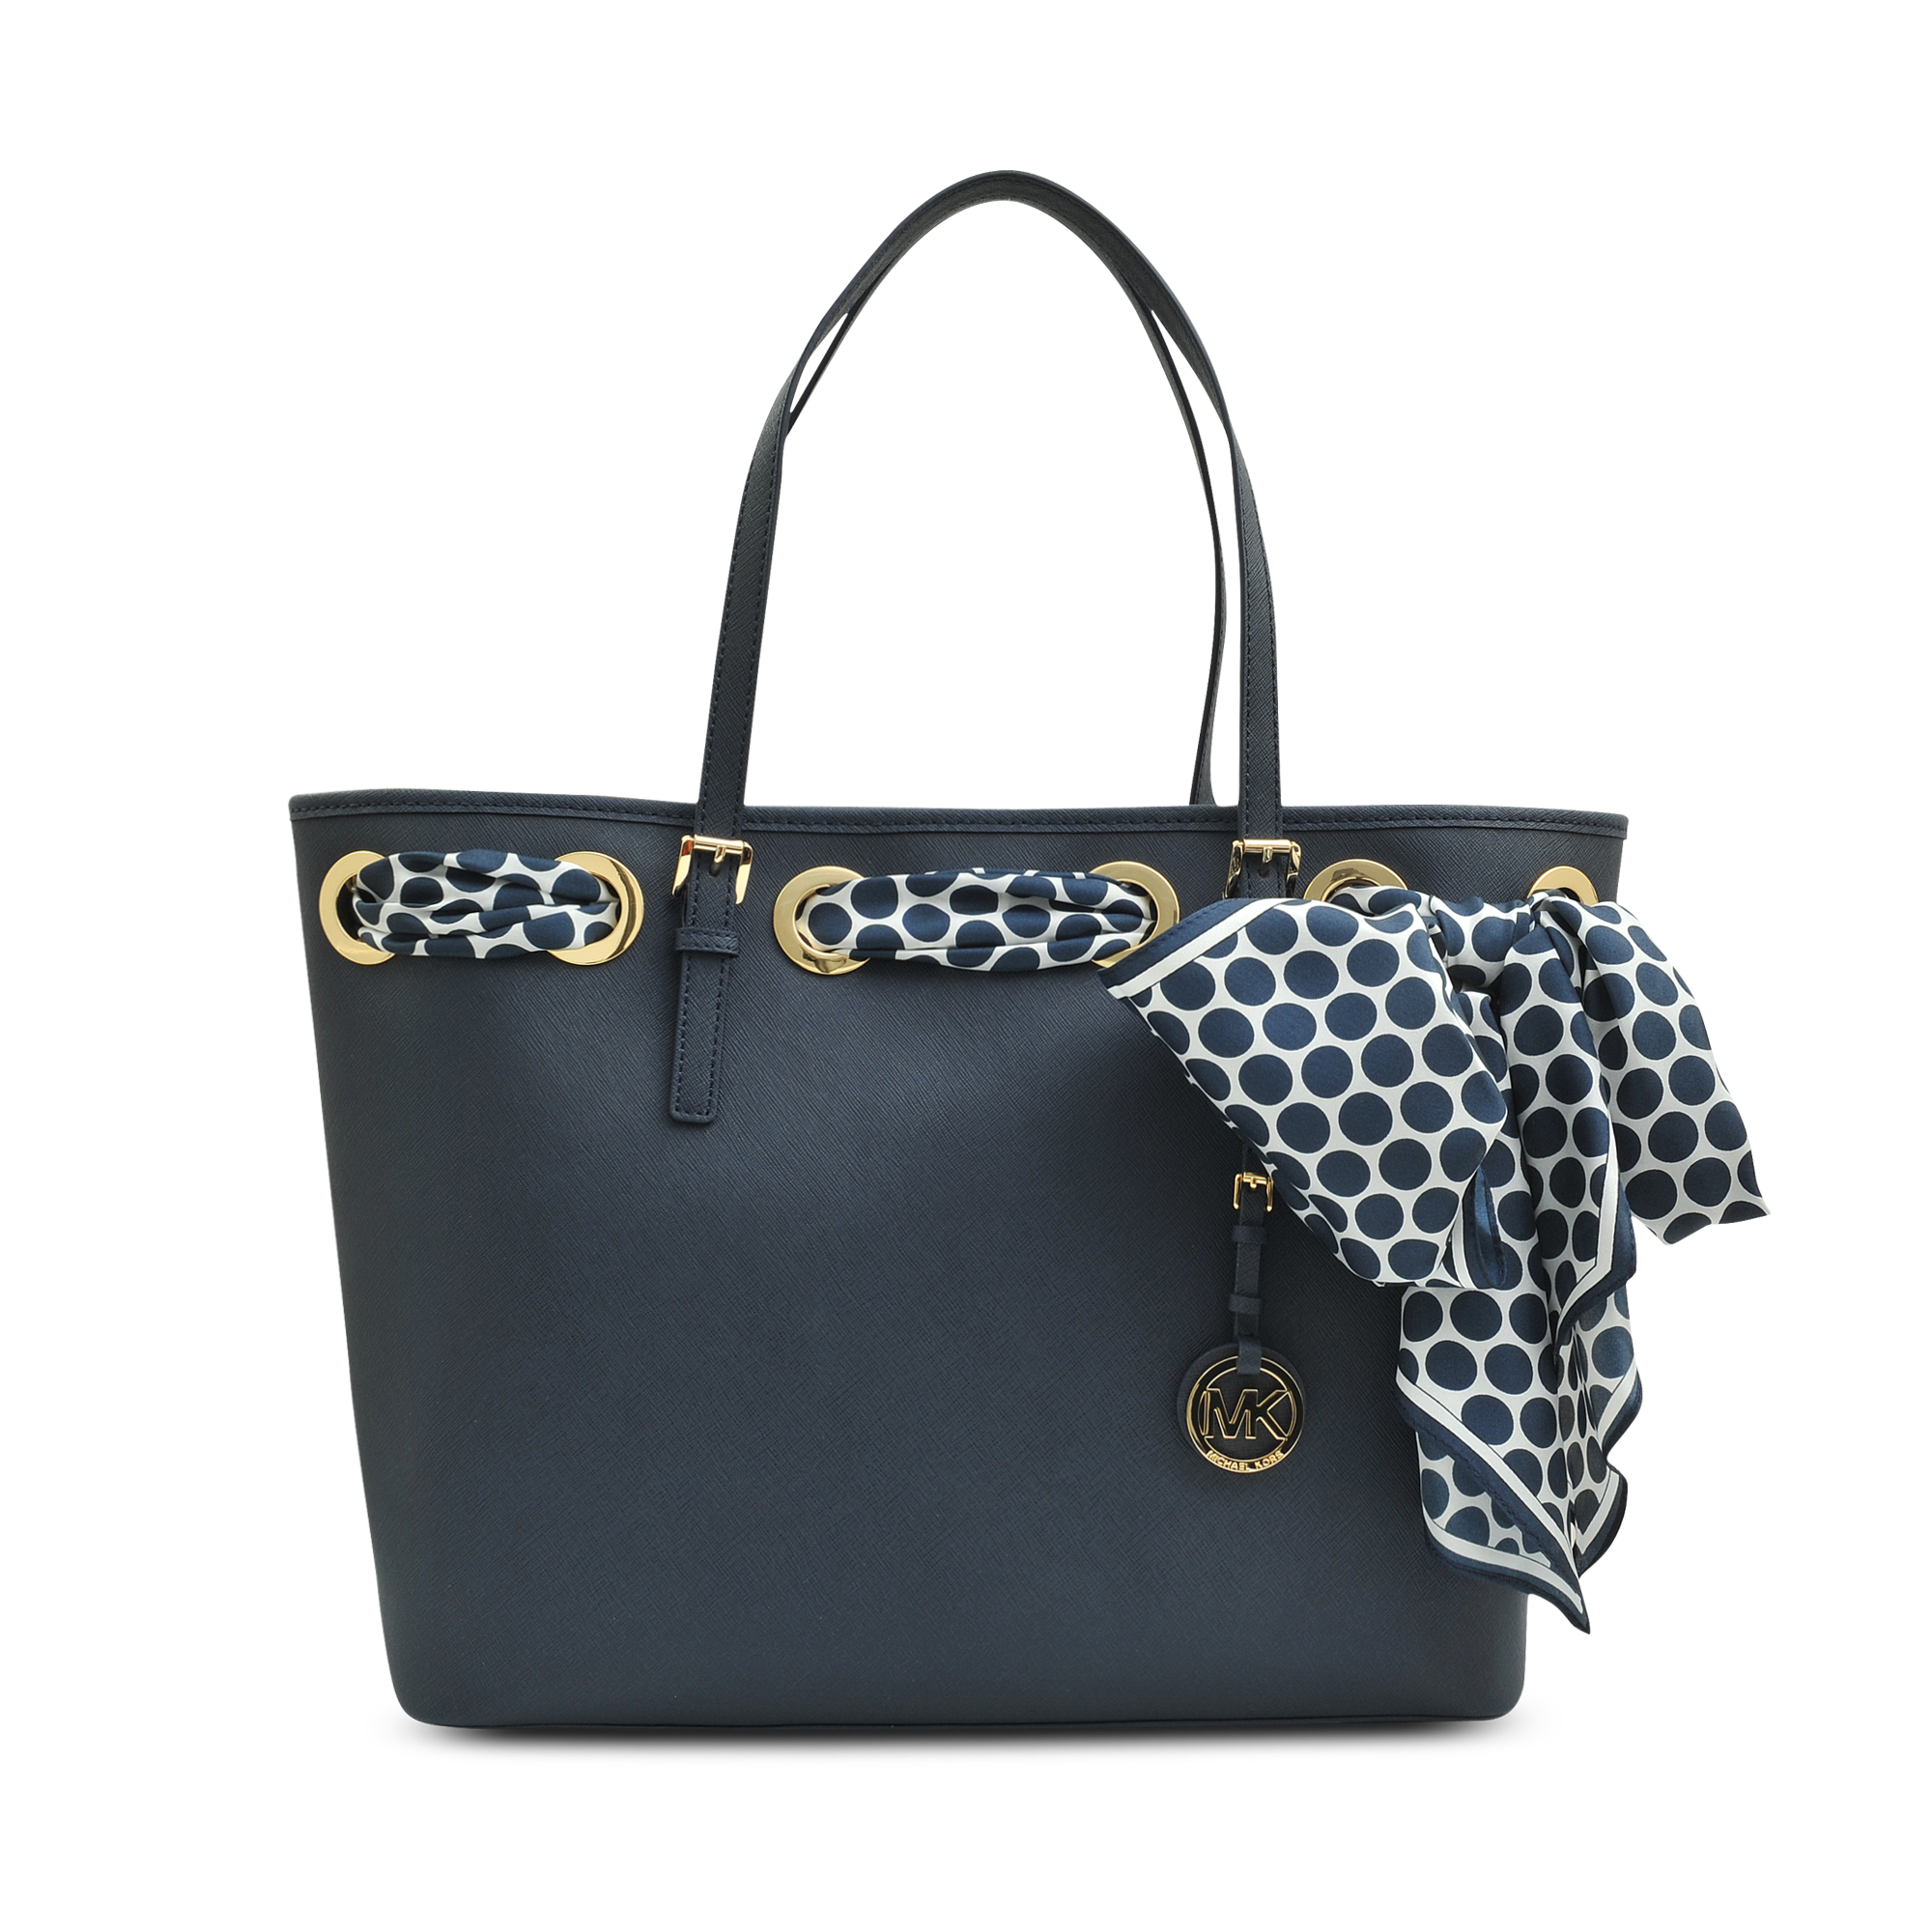 Michael Kors Jet Set Item Scarf Tote In Blue Lyst. Michael Kors Scarf Totes  Leather Canvas ... e820cc0b73094